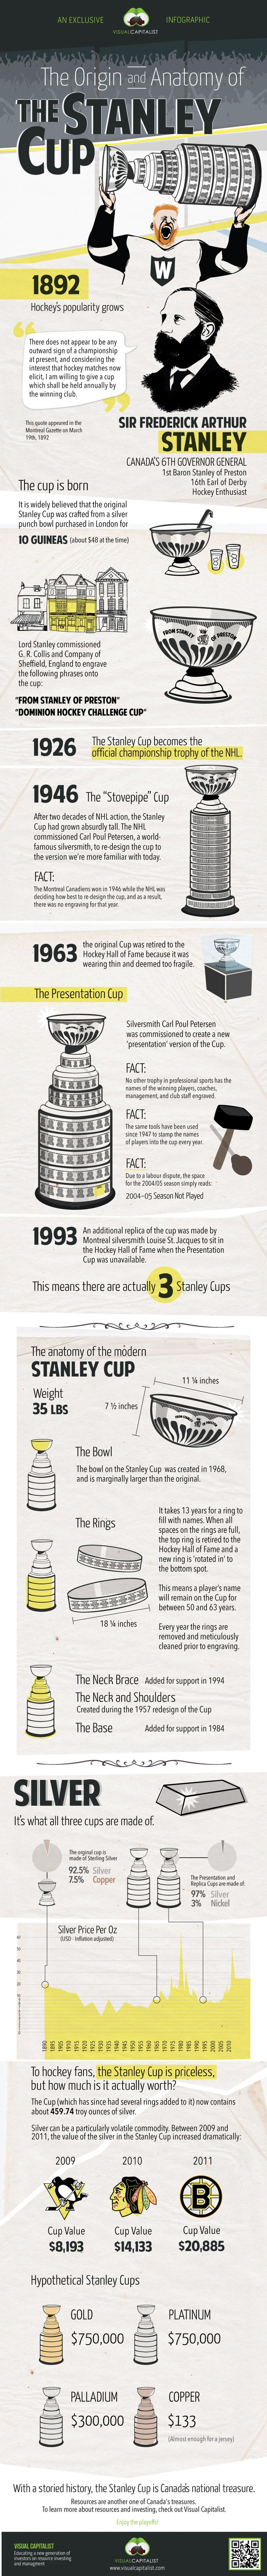 Origin and Anatomy of the Stanley Cup